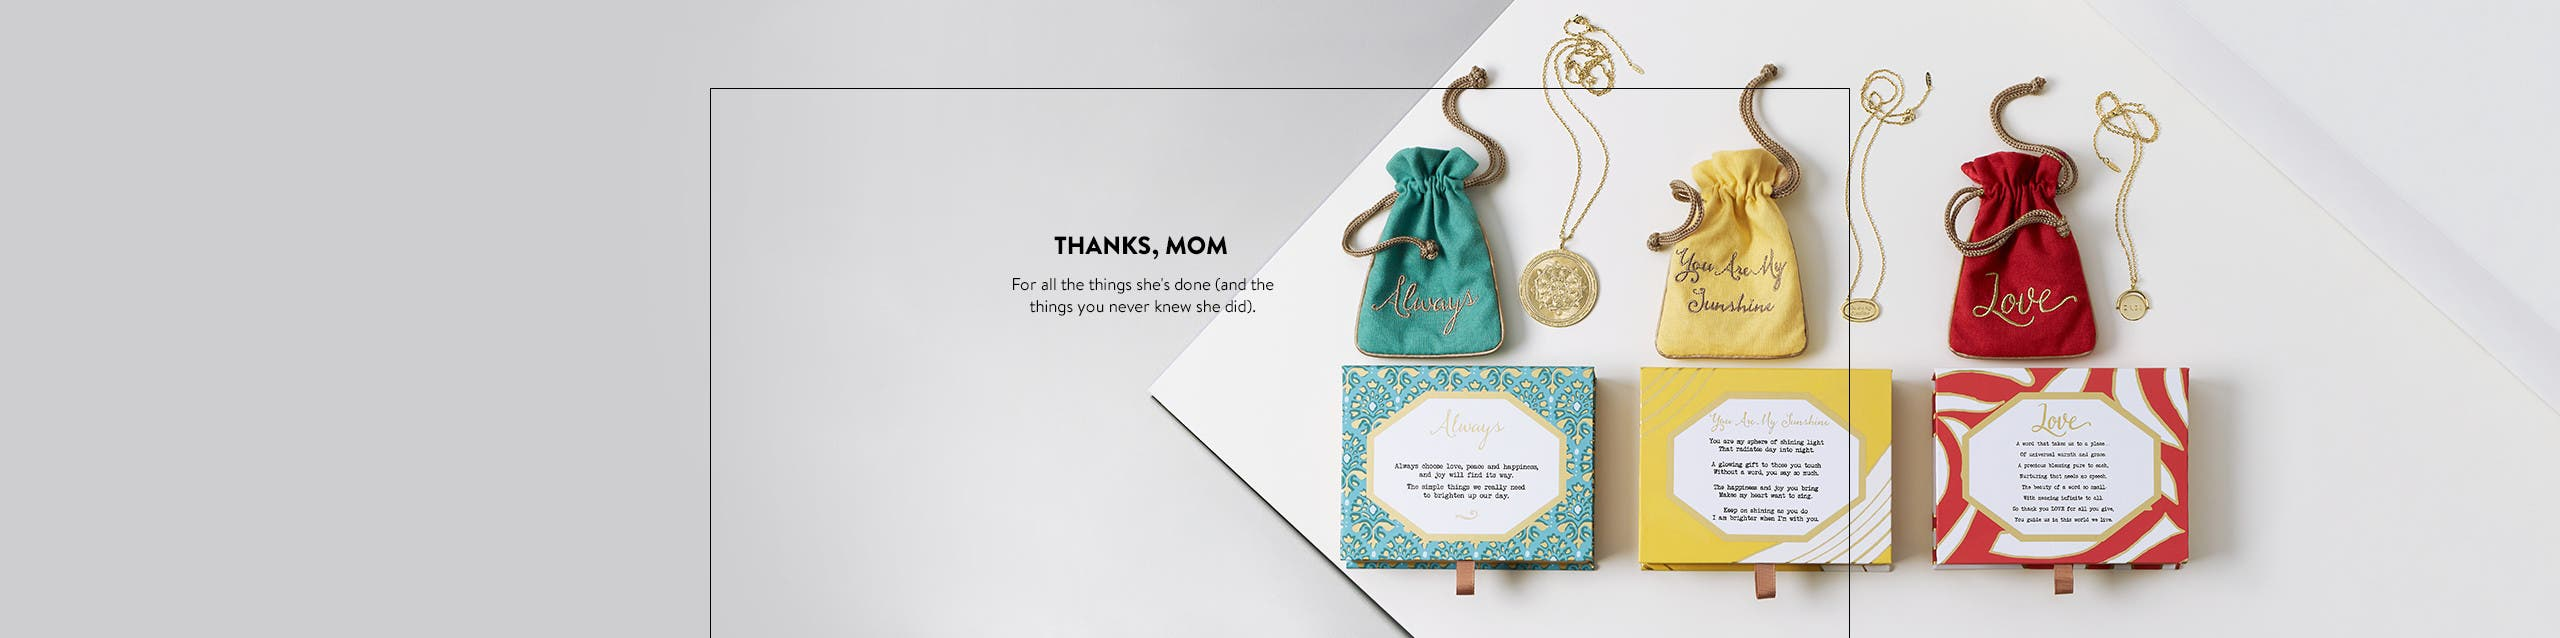 Thanks, Mom: Mother's Day gifts.